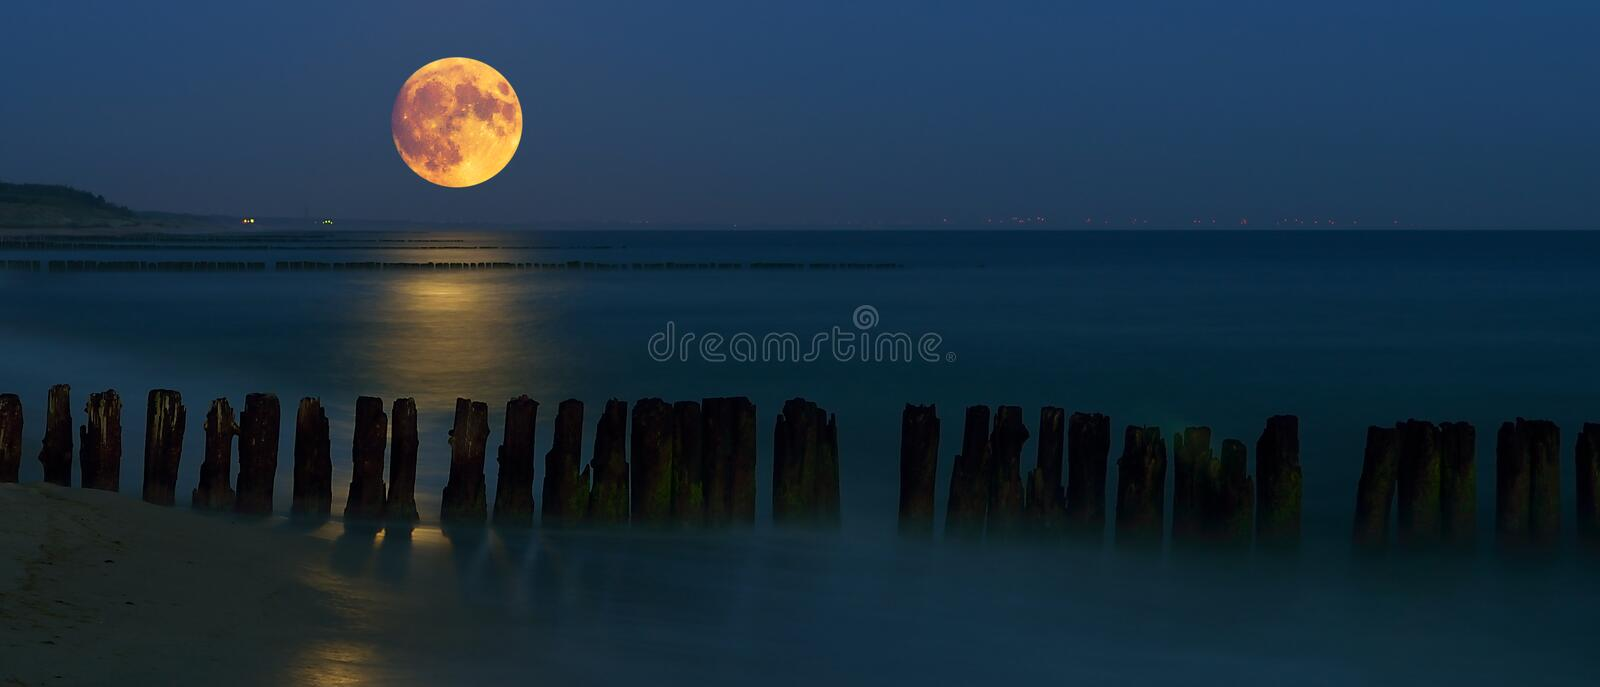 West of the moon over the sea royalty free stock photo